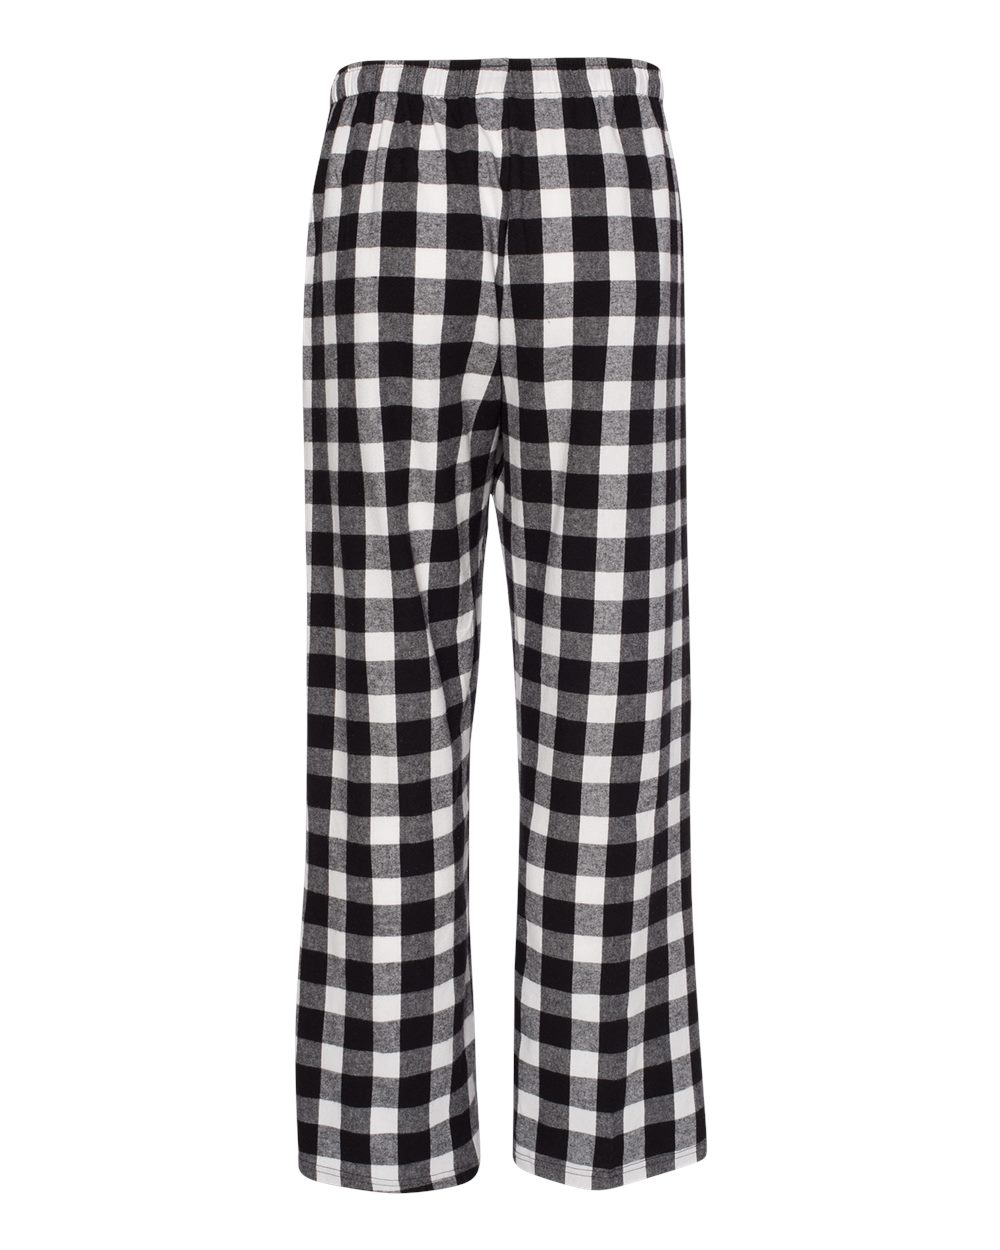 Boxercraft-Unisex-Flannel-Pants-With-Pockets-Pajama-Pants-F20-up-to-2XL thumbnail 52